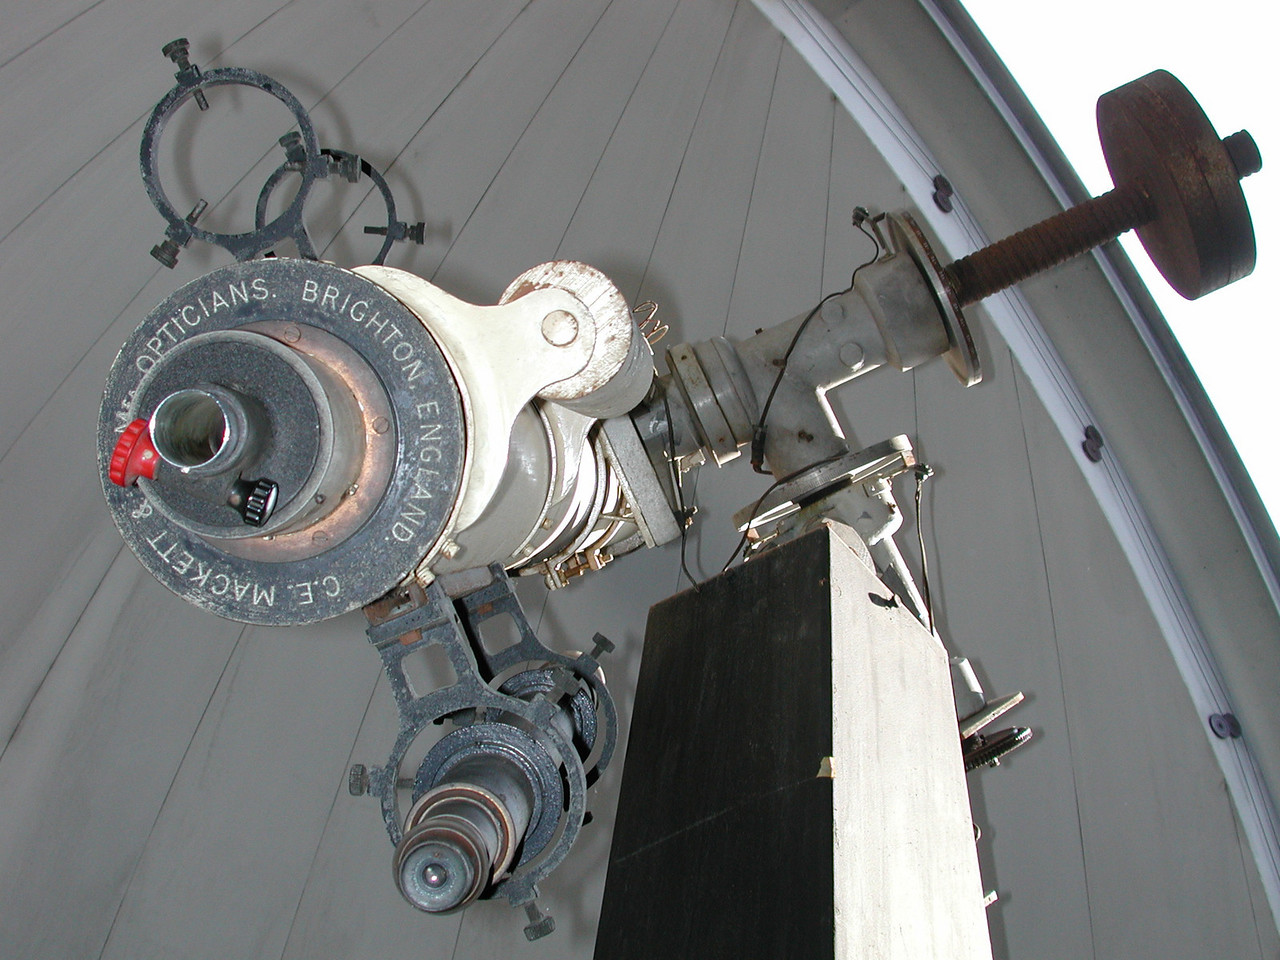 Observers end of the telescope reveals the manufacturer